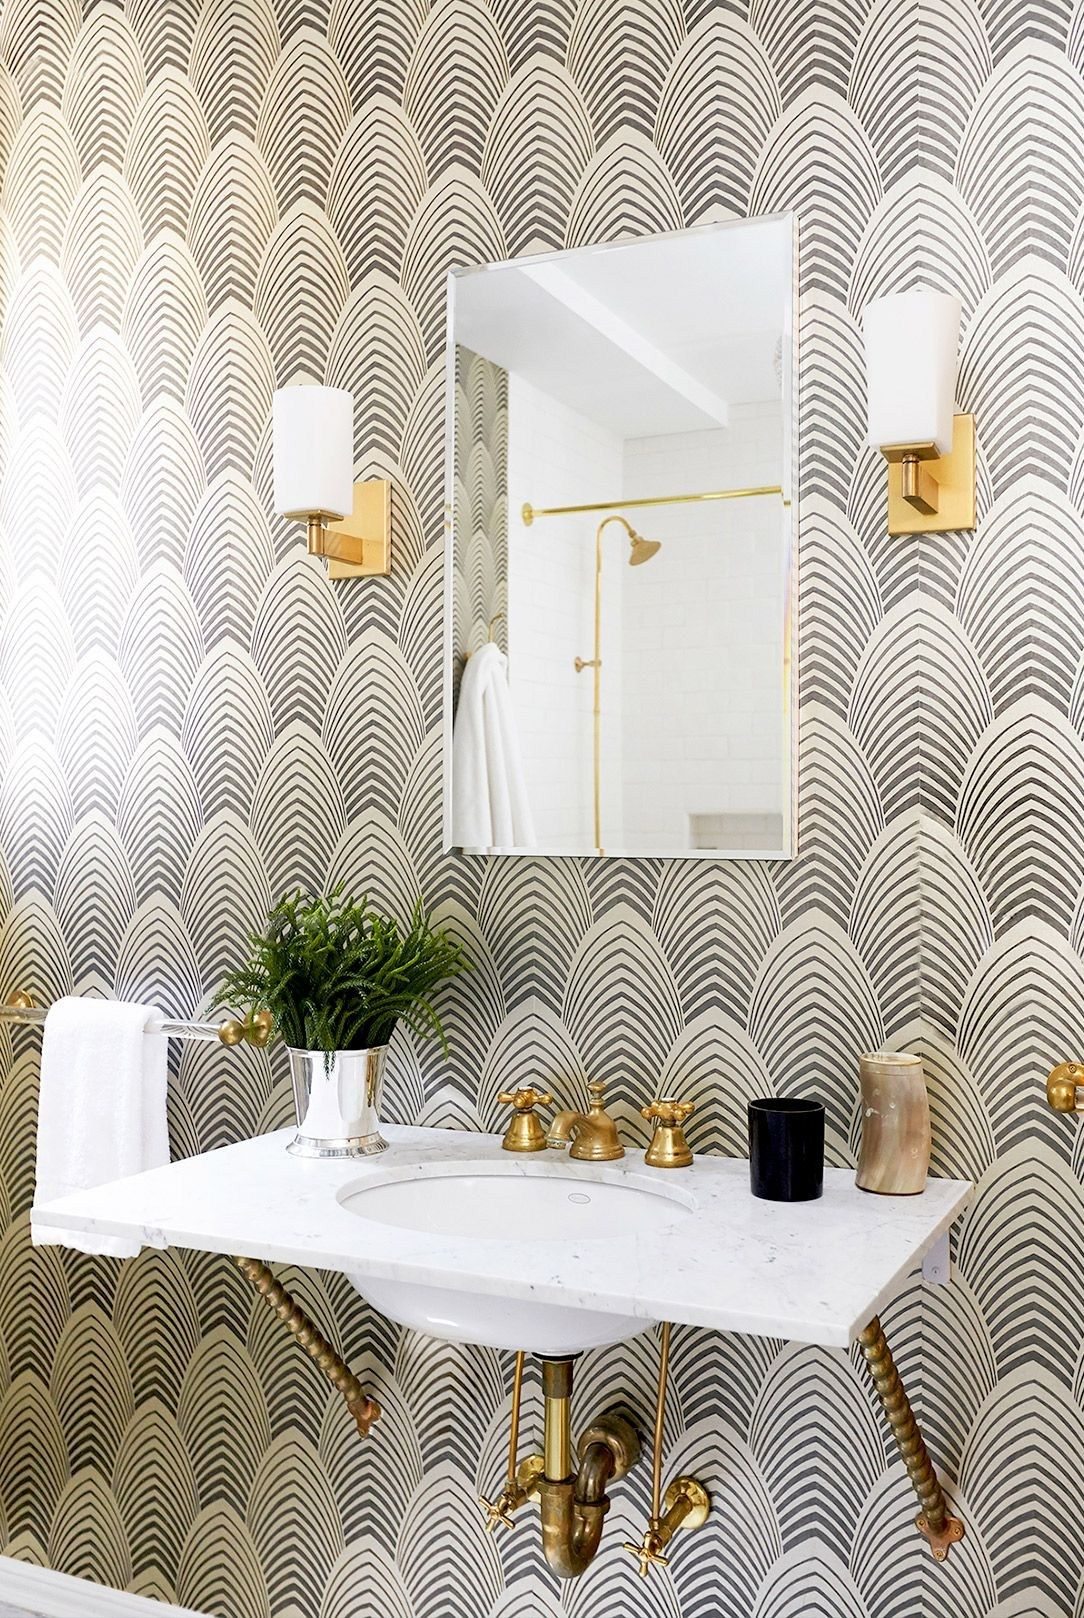 Black and white wallpaper in bathroom with gold sconces   wallpapers ...